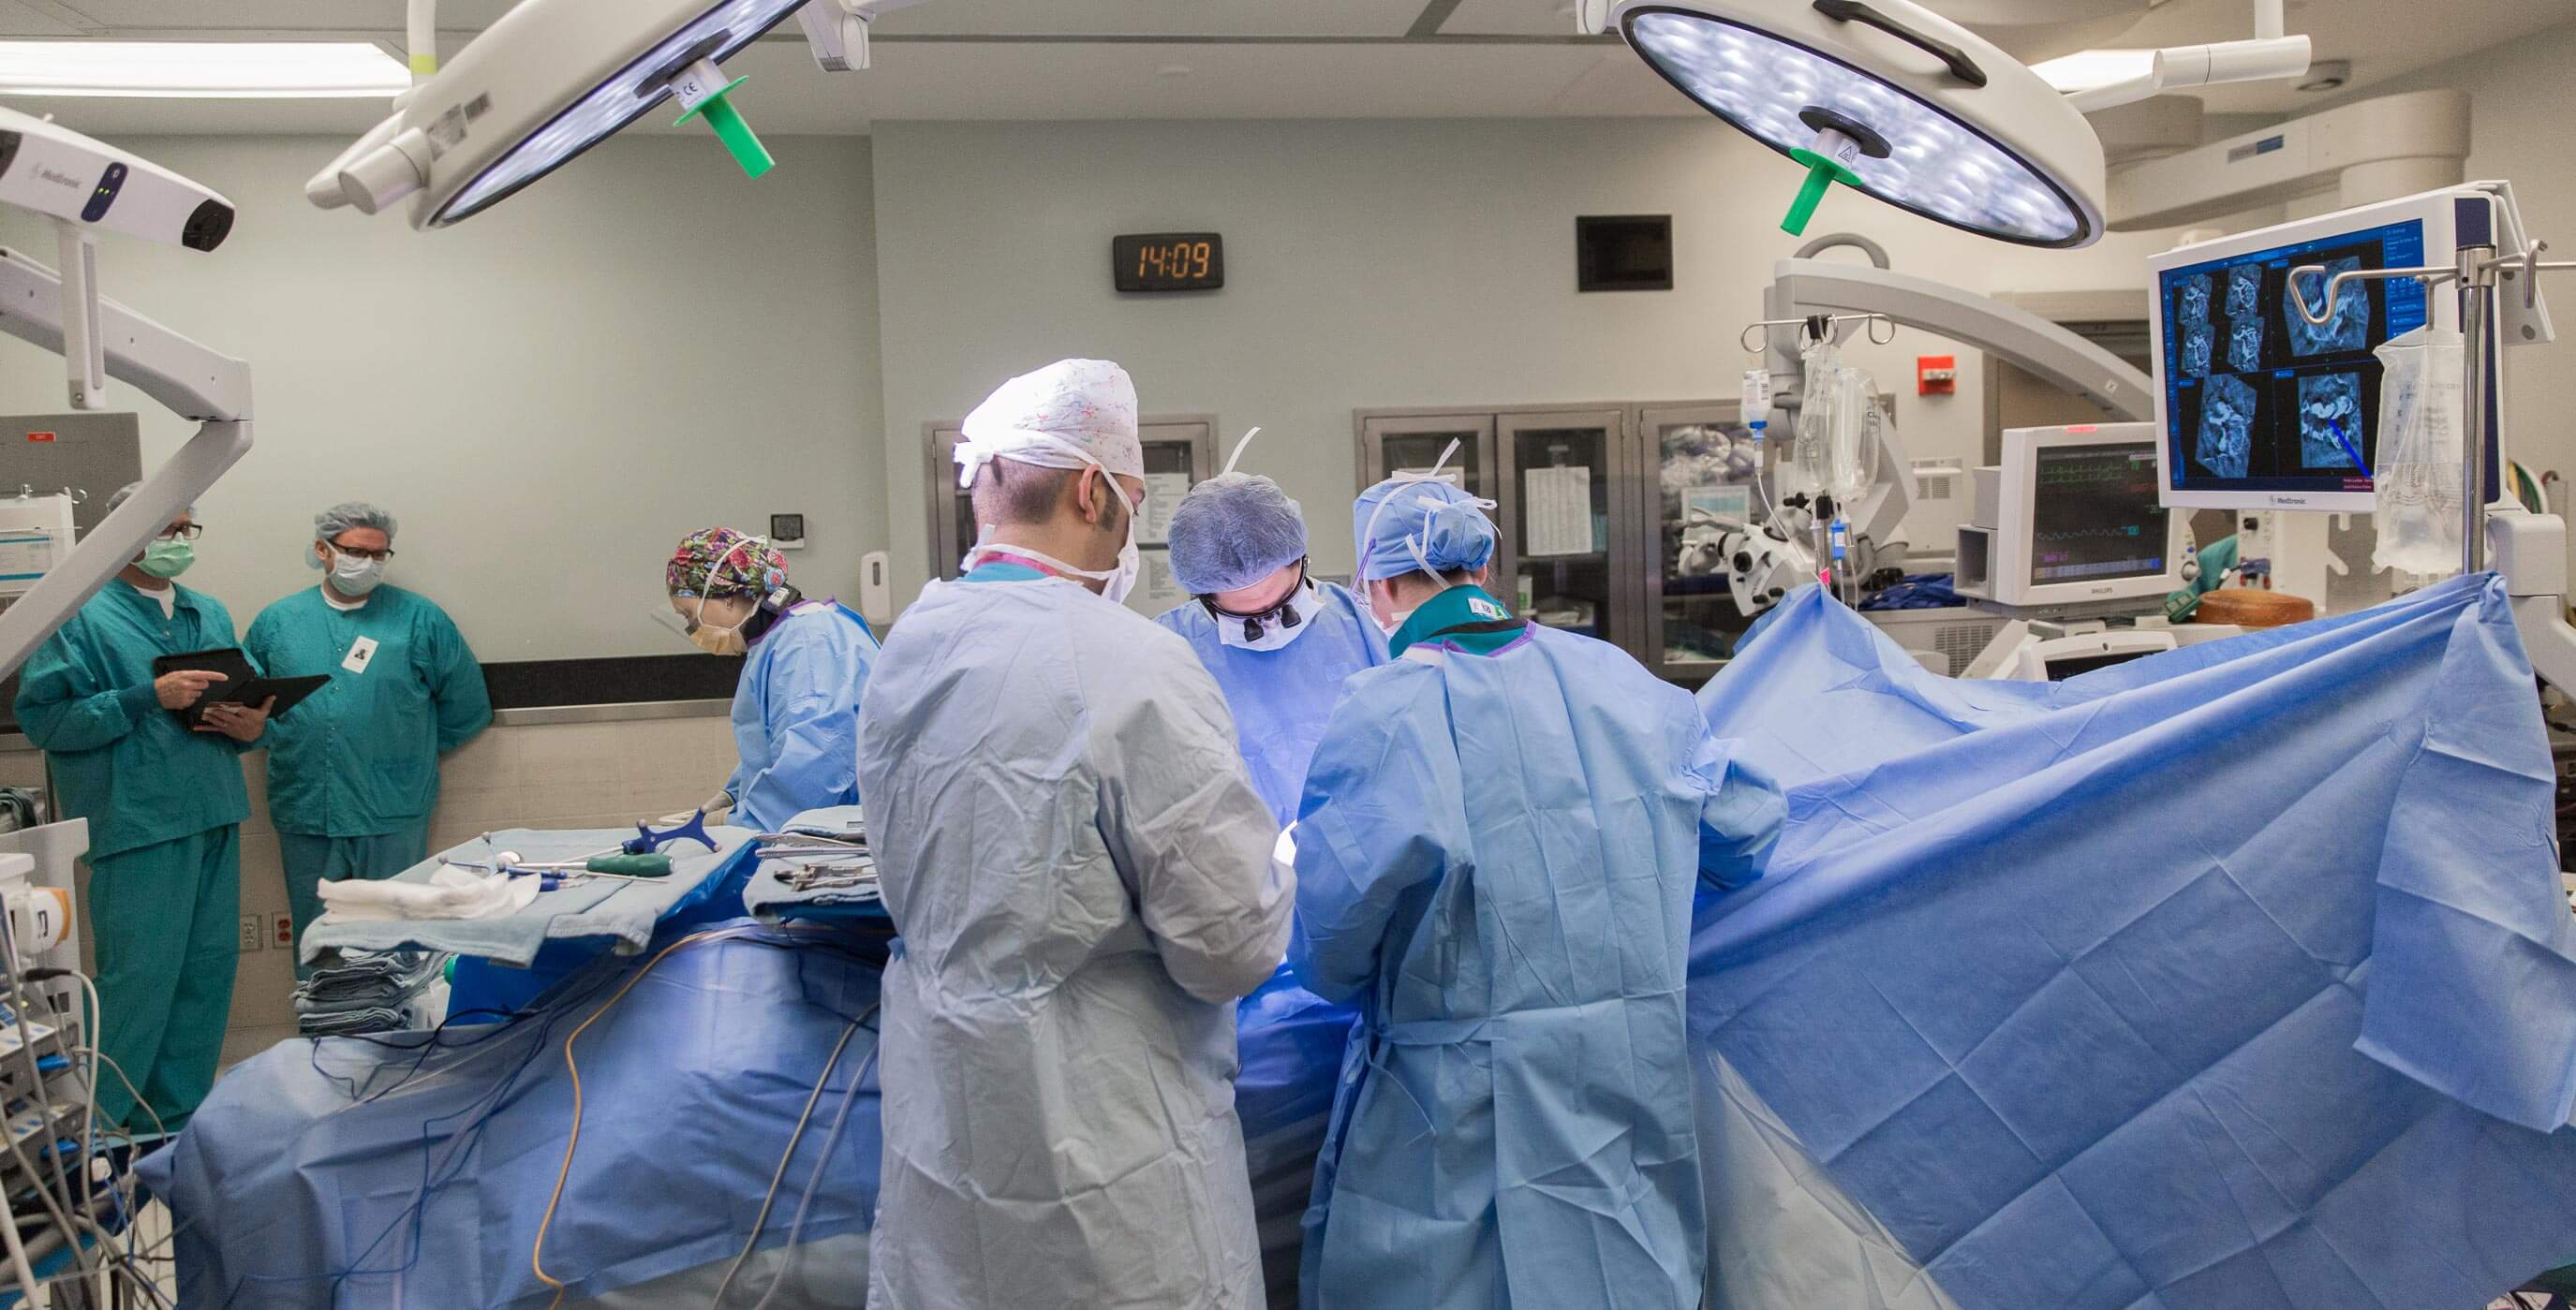 General Surgery and Surgical Services At Overlake Medical Center